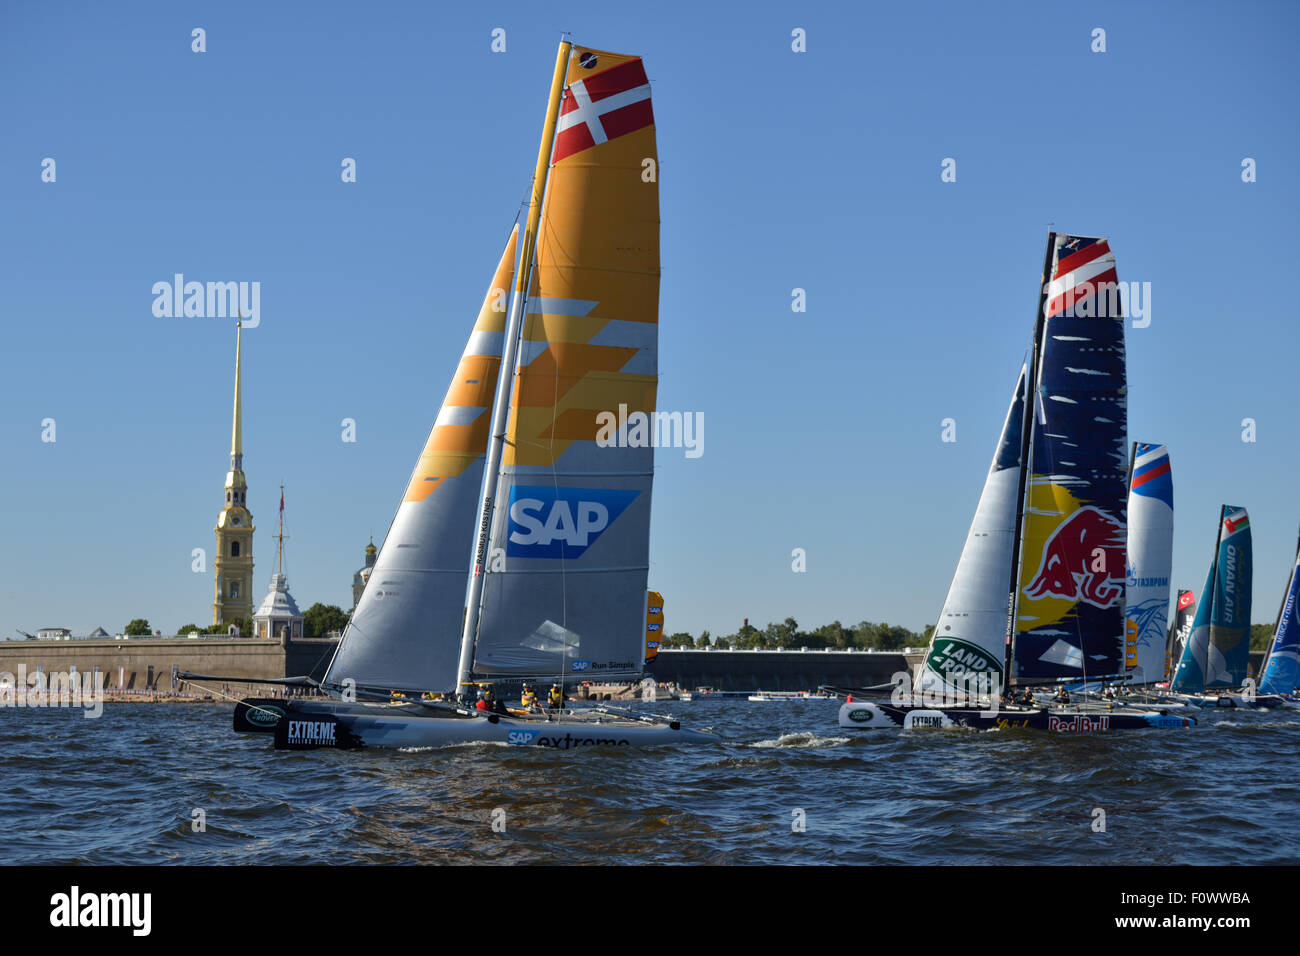 St. Petersburg, Russia, 21st August, 2015. Extreme 40 catamarans compete during the 2nd day of St. Petersburg stage Stock Photo